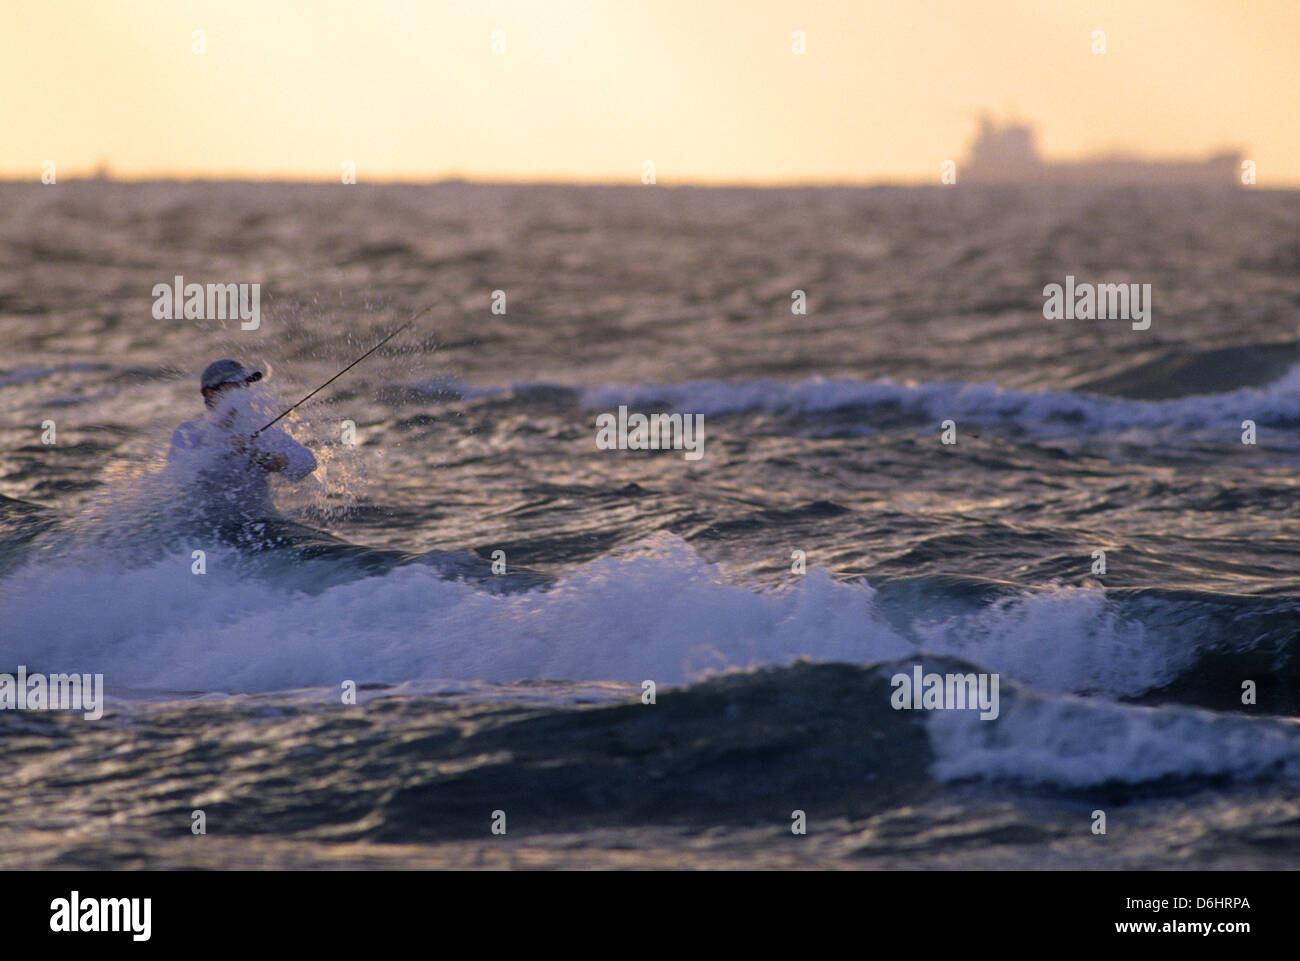 Surf fisherman casting in the waves at sunrise on Mustang Island Texas - Stock Image